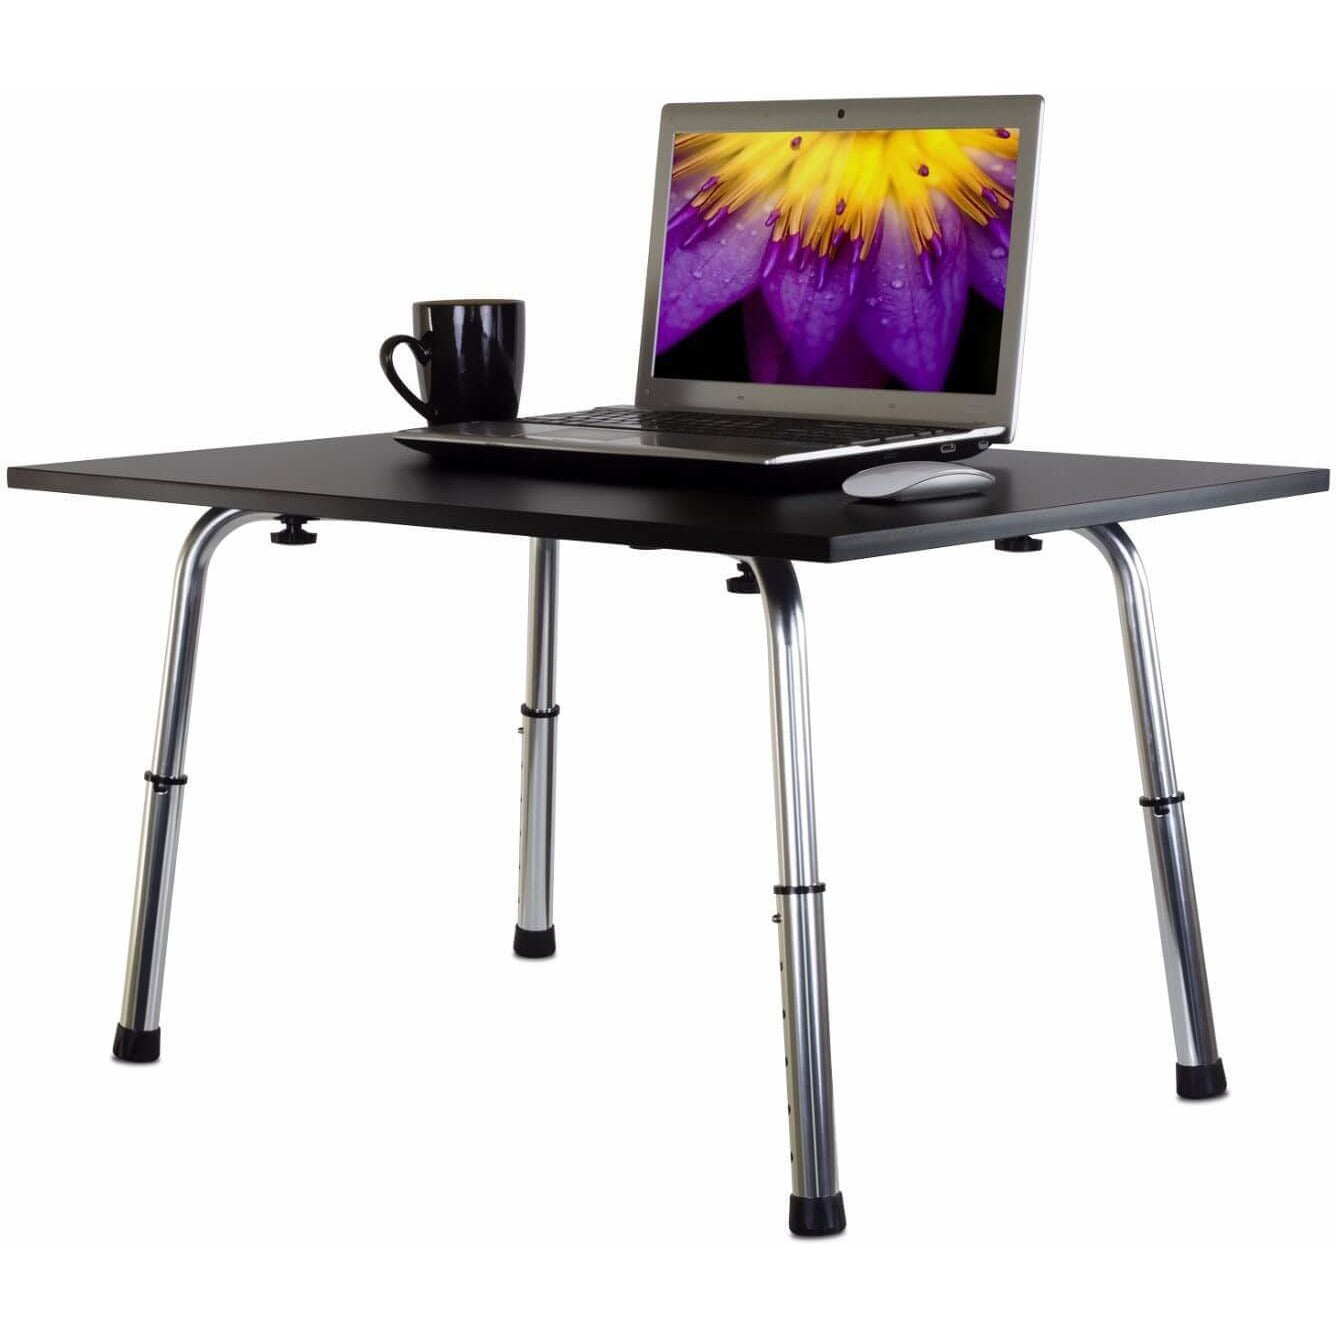 Mount It Large Tabletop Standing Desk Converter Mi 7933 Fit To Five